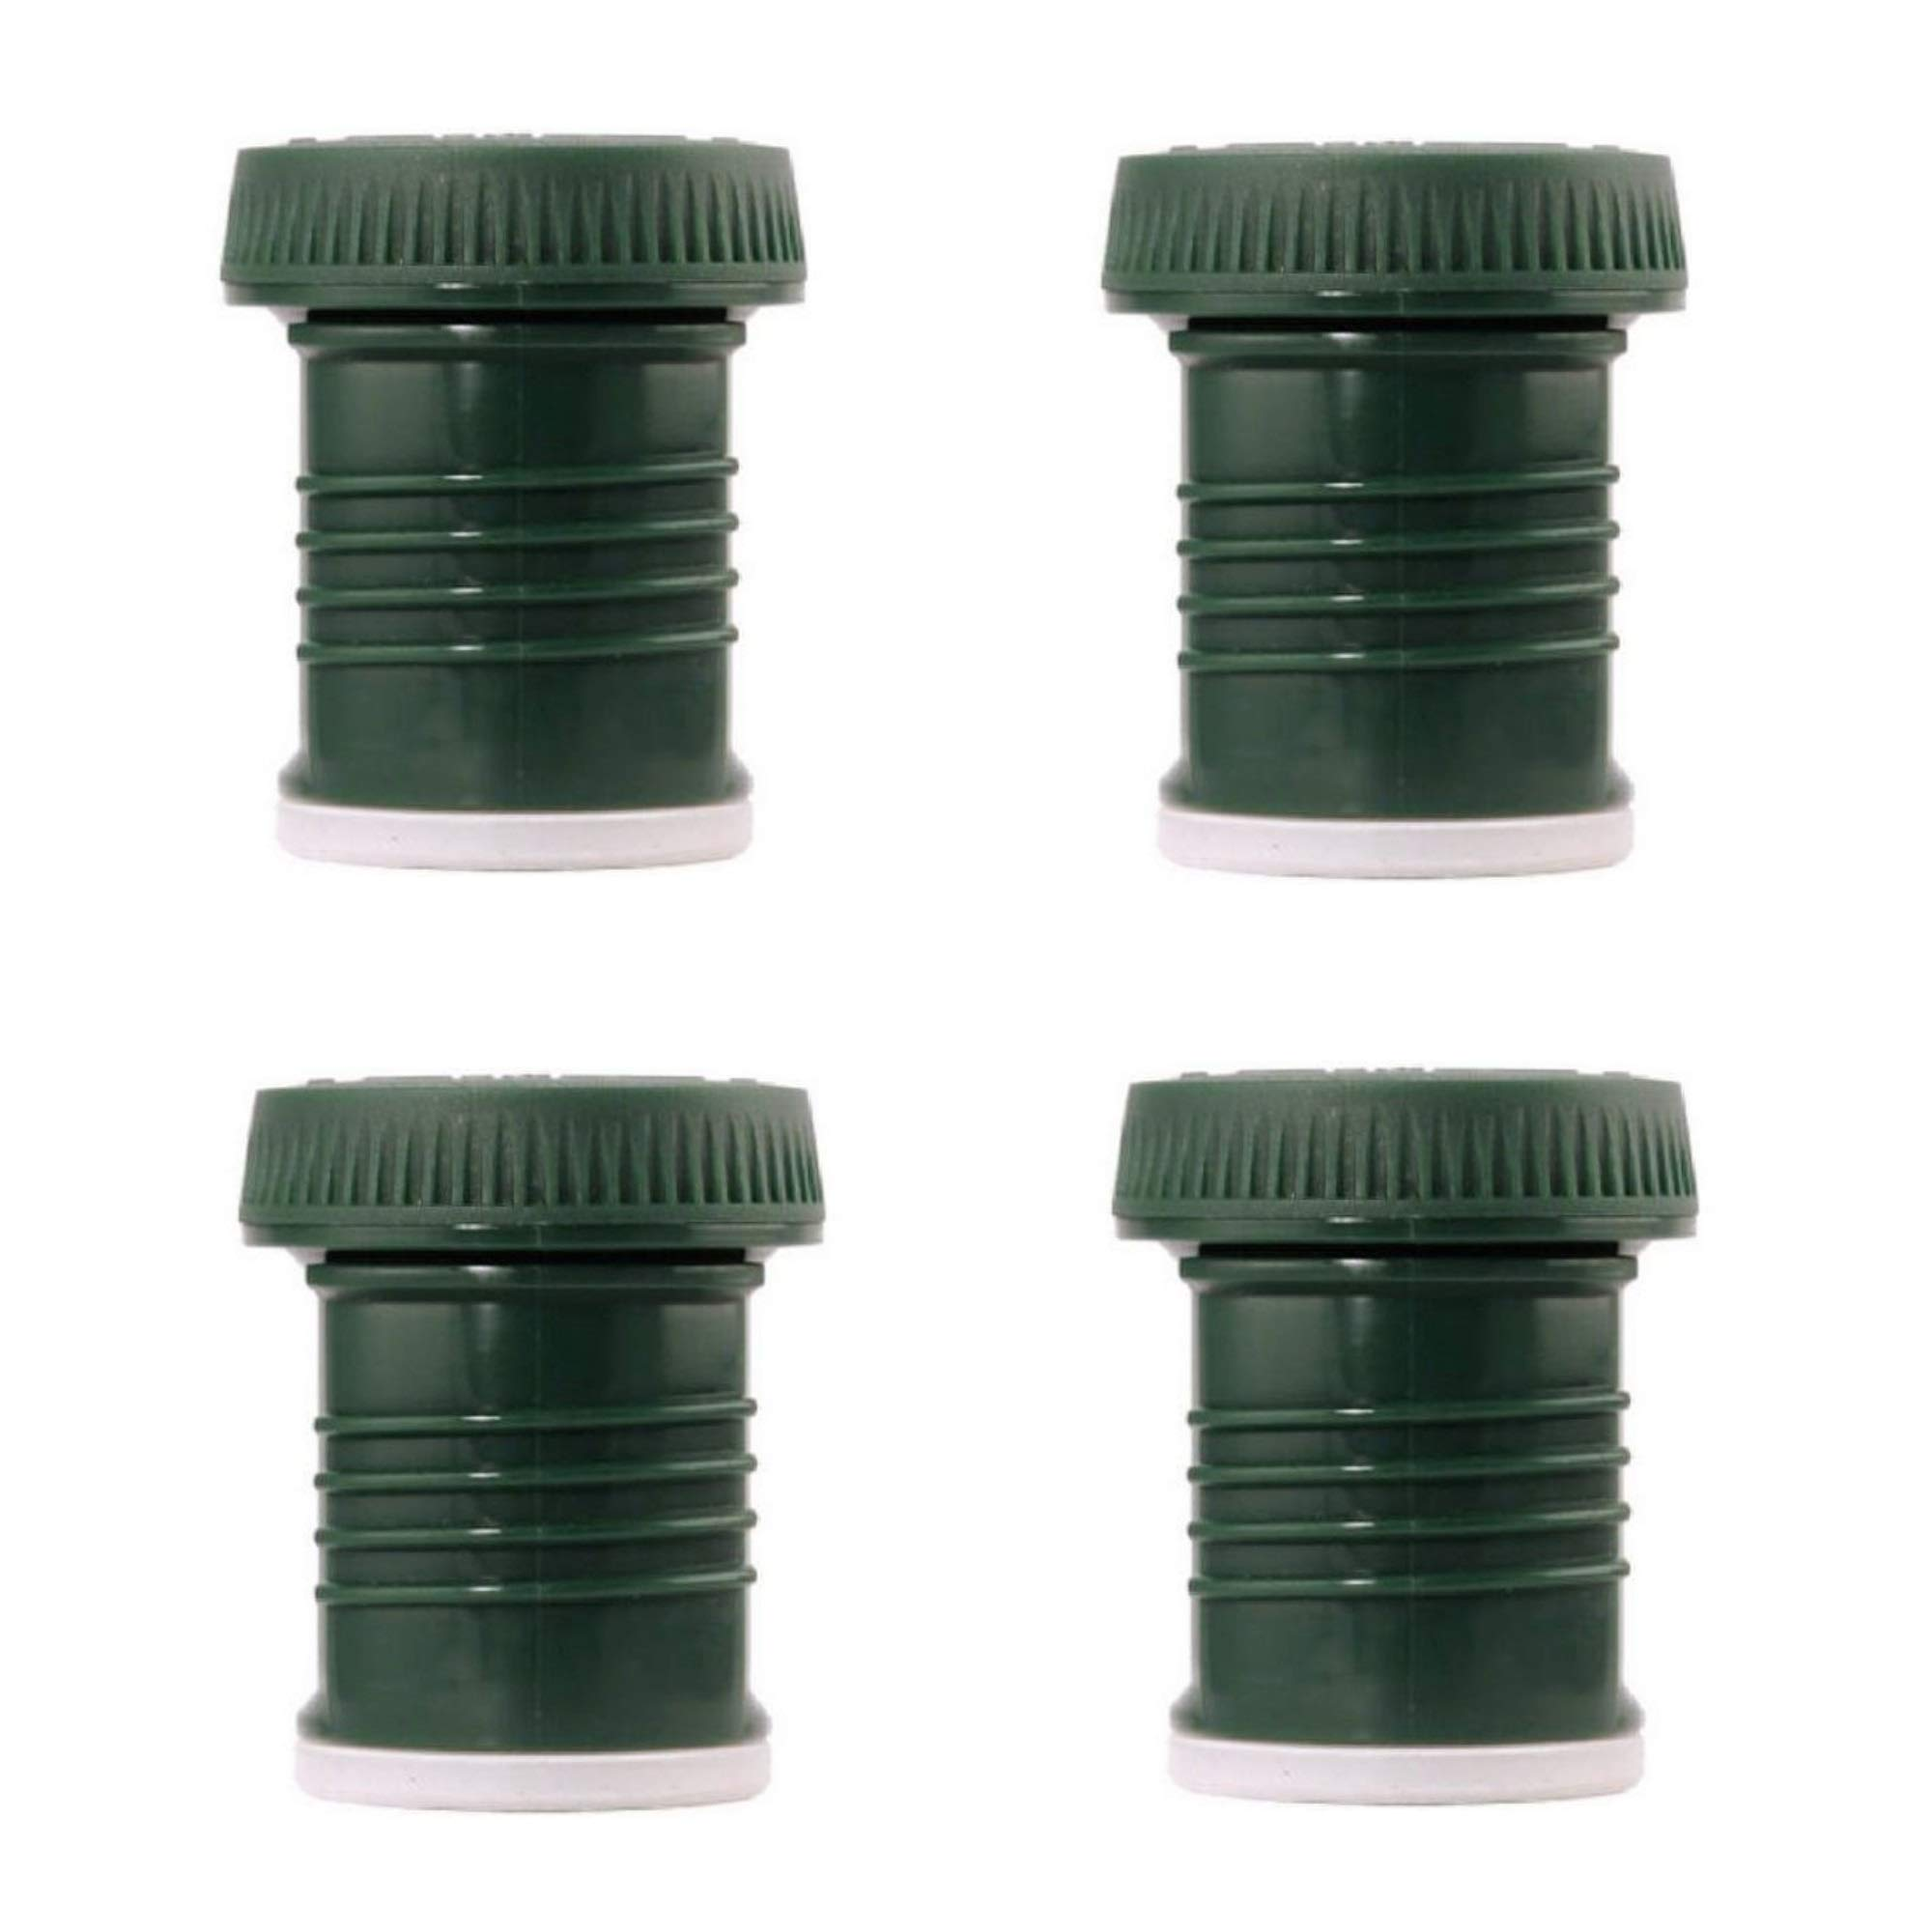 Stanley ACP0050-632 Classic Universal Stopper A, 4 Pack by Stanley